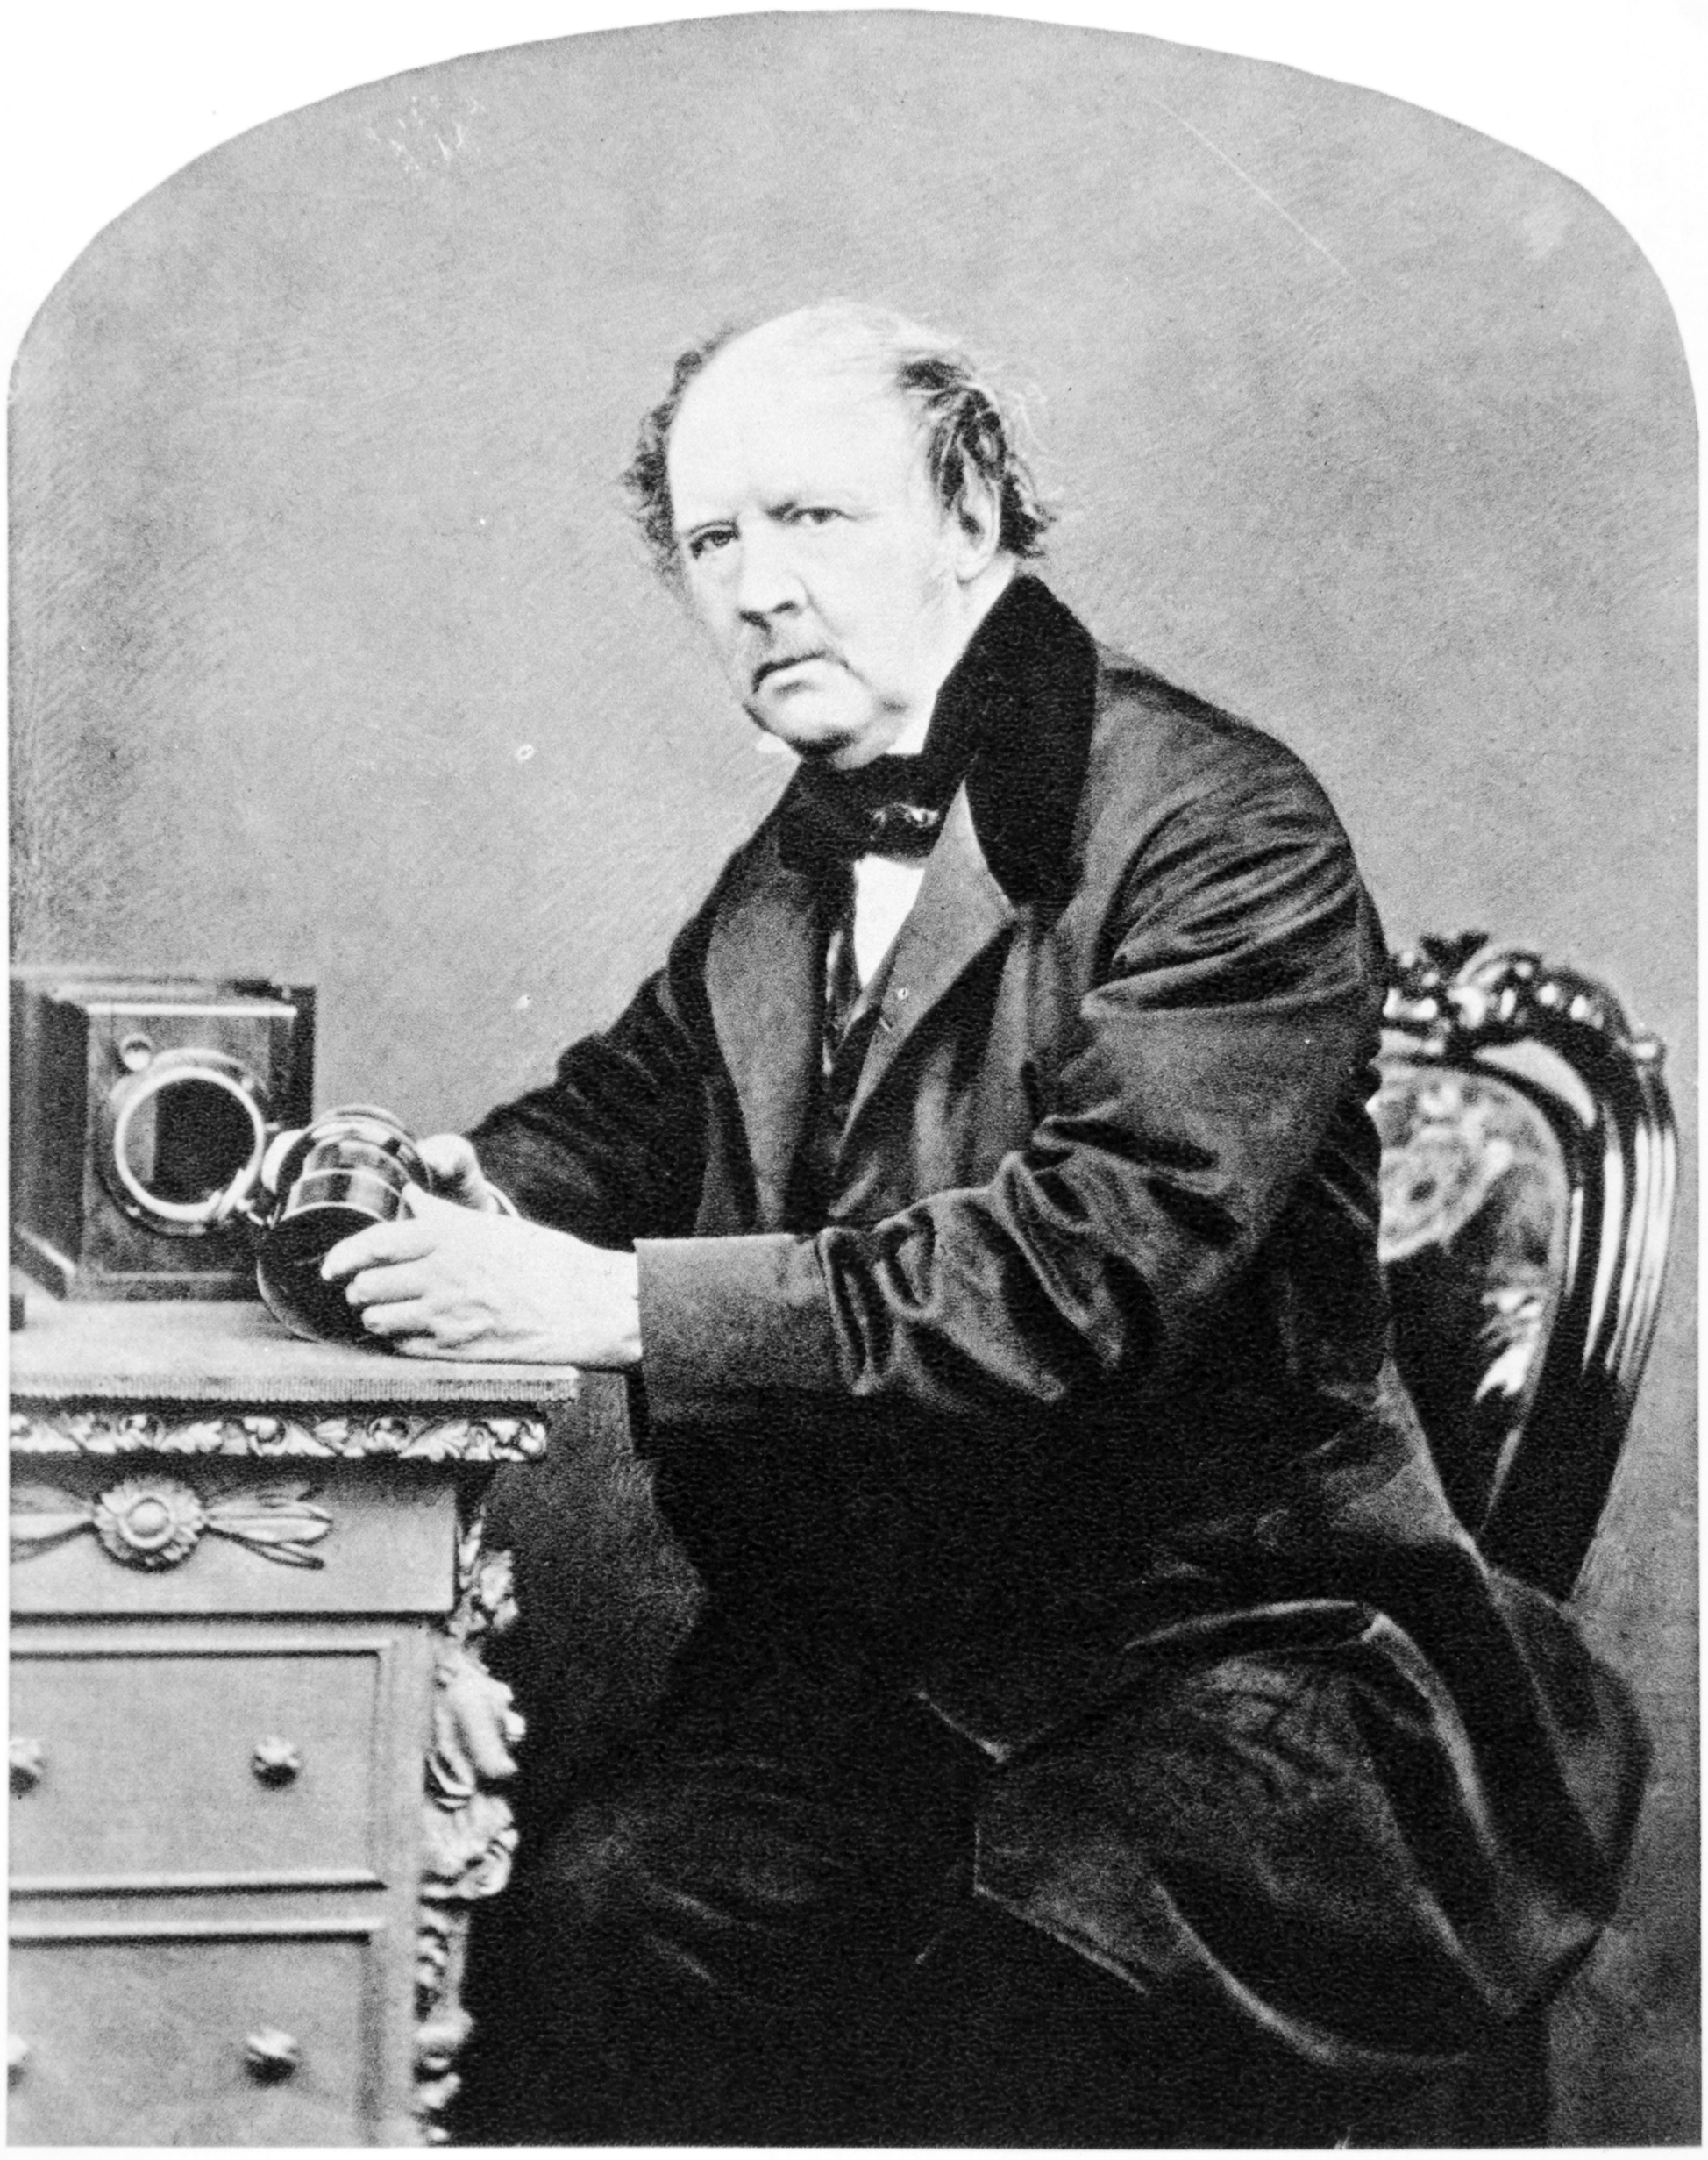 Image of William Henry Fox Talbot from Wikidata